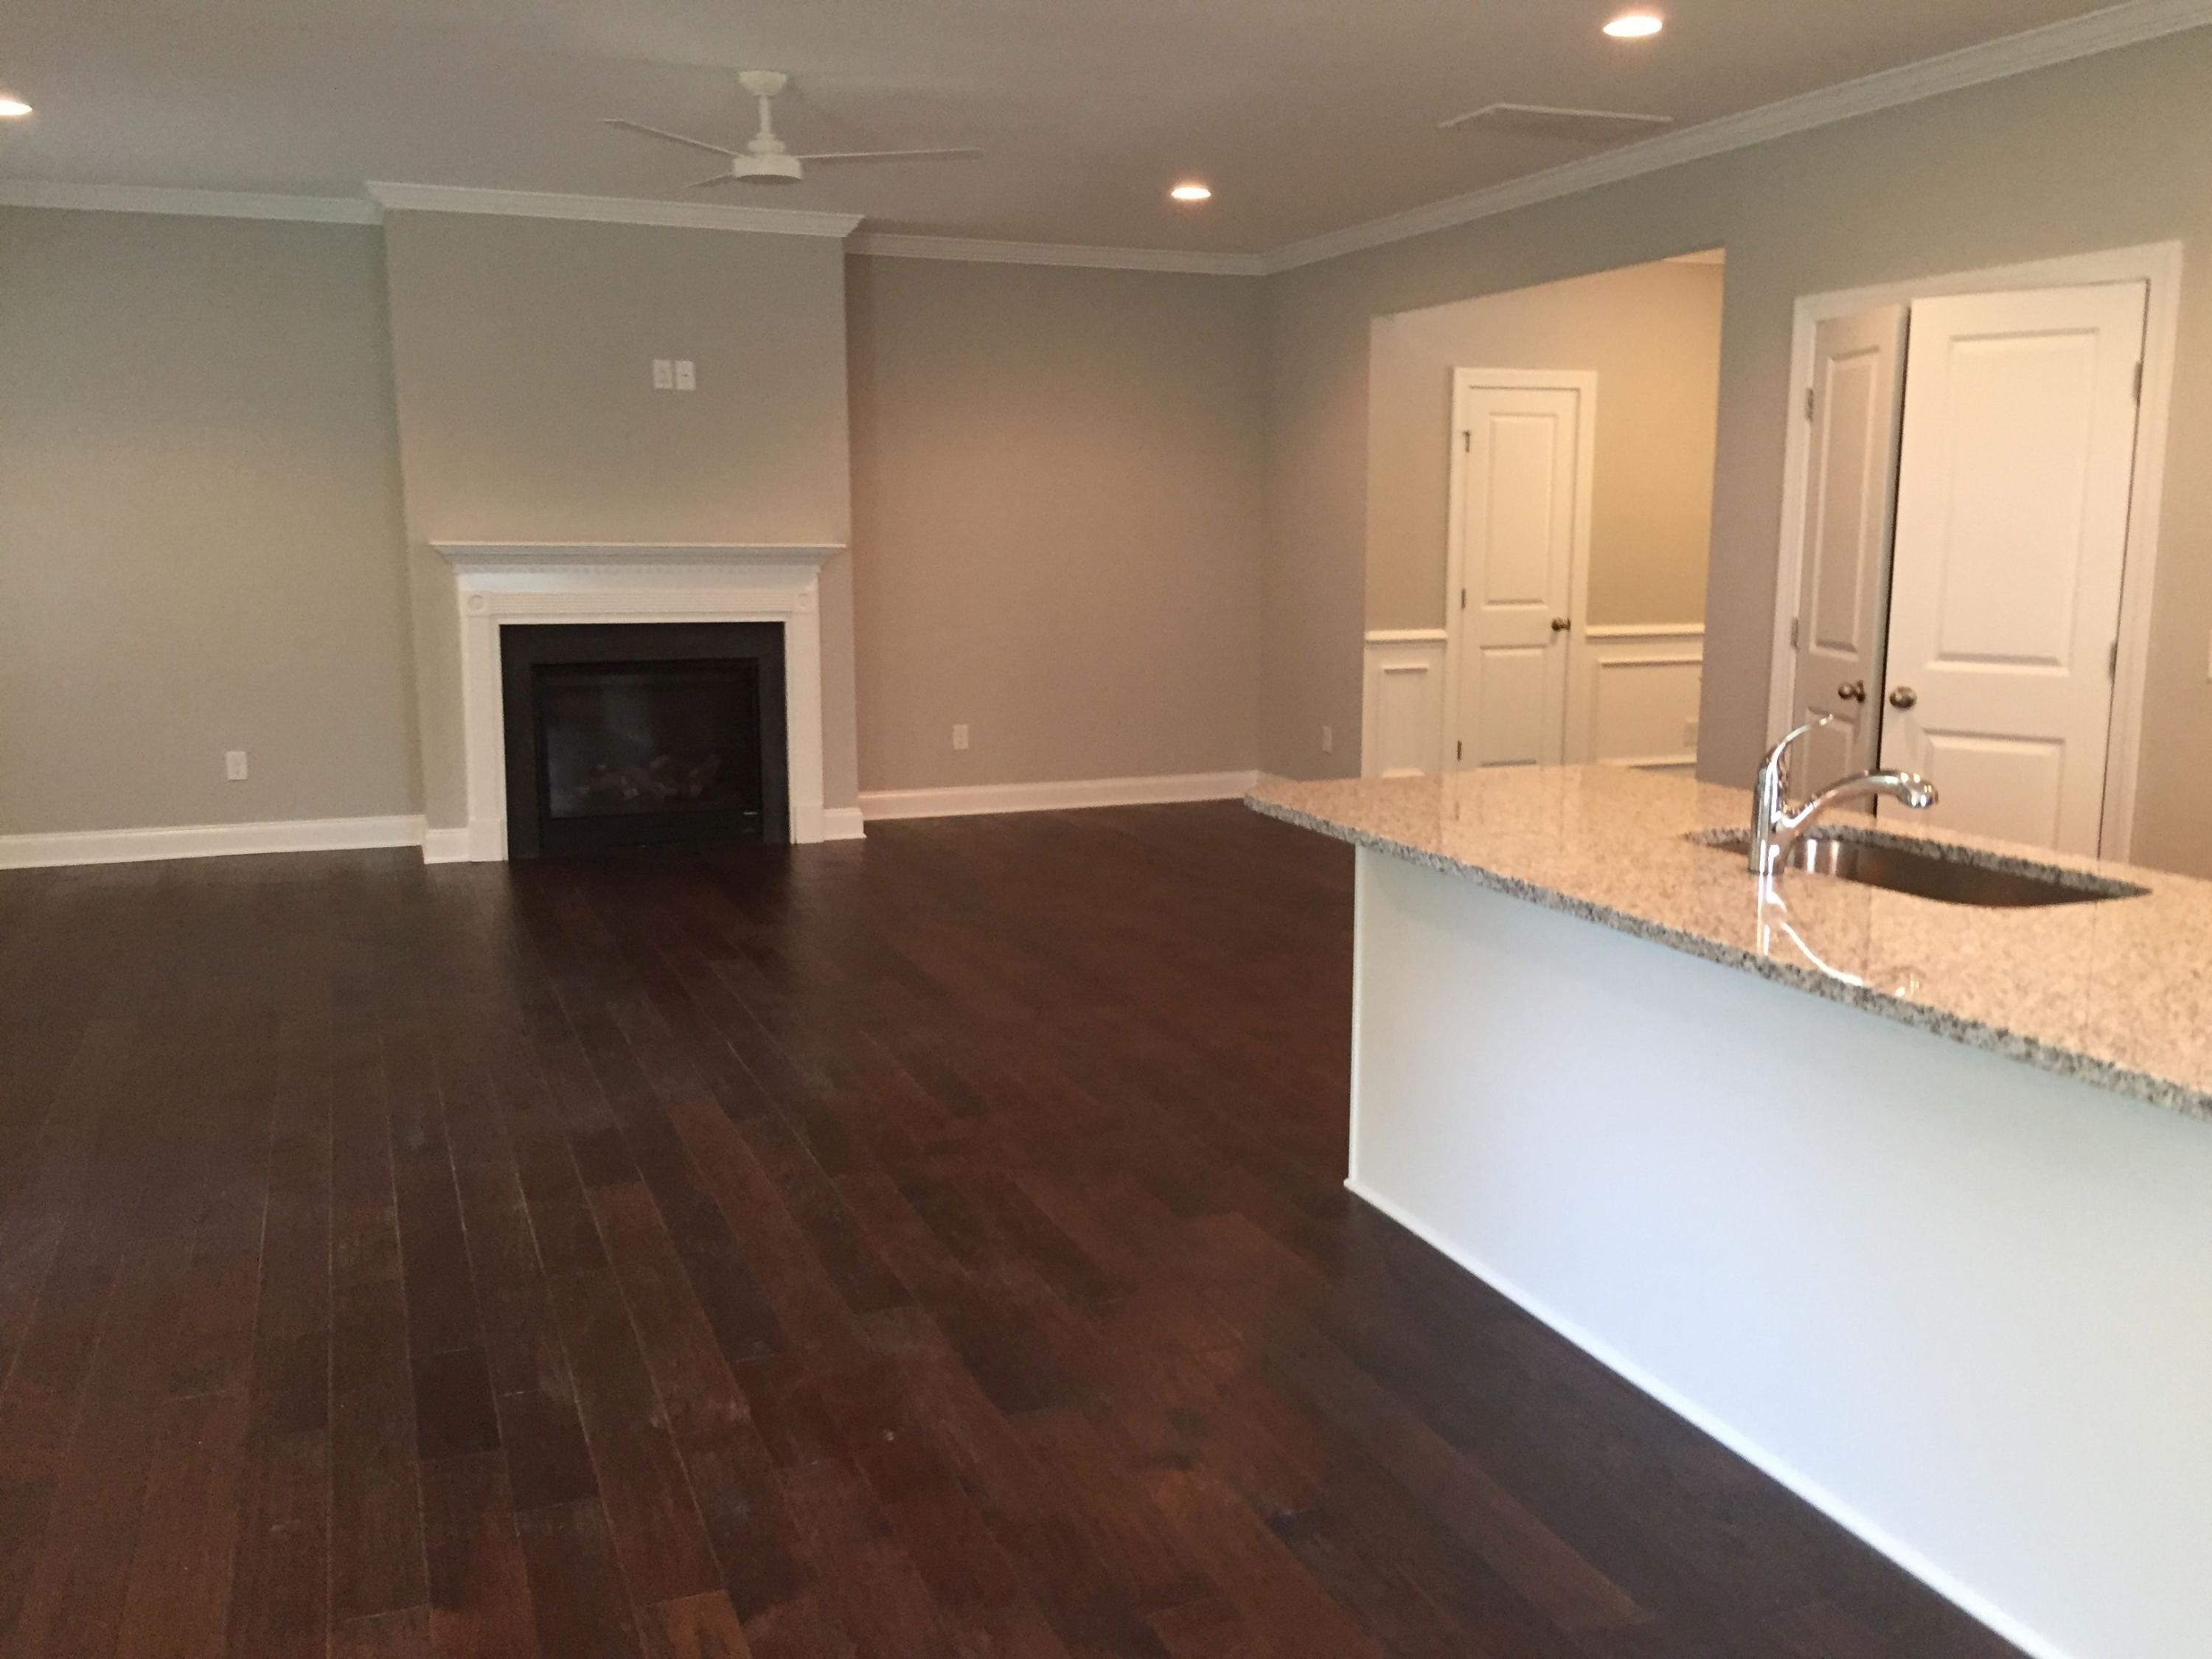 Photo of 1161 Sumner Ave, North Charleston, SC 29406